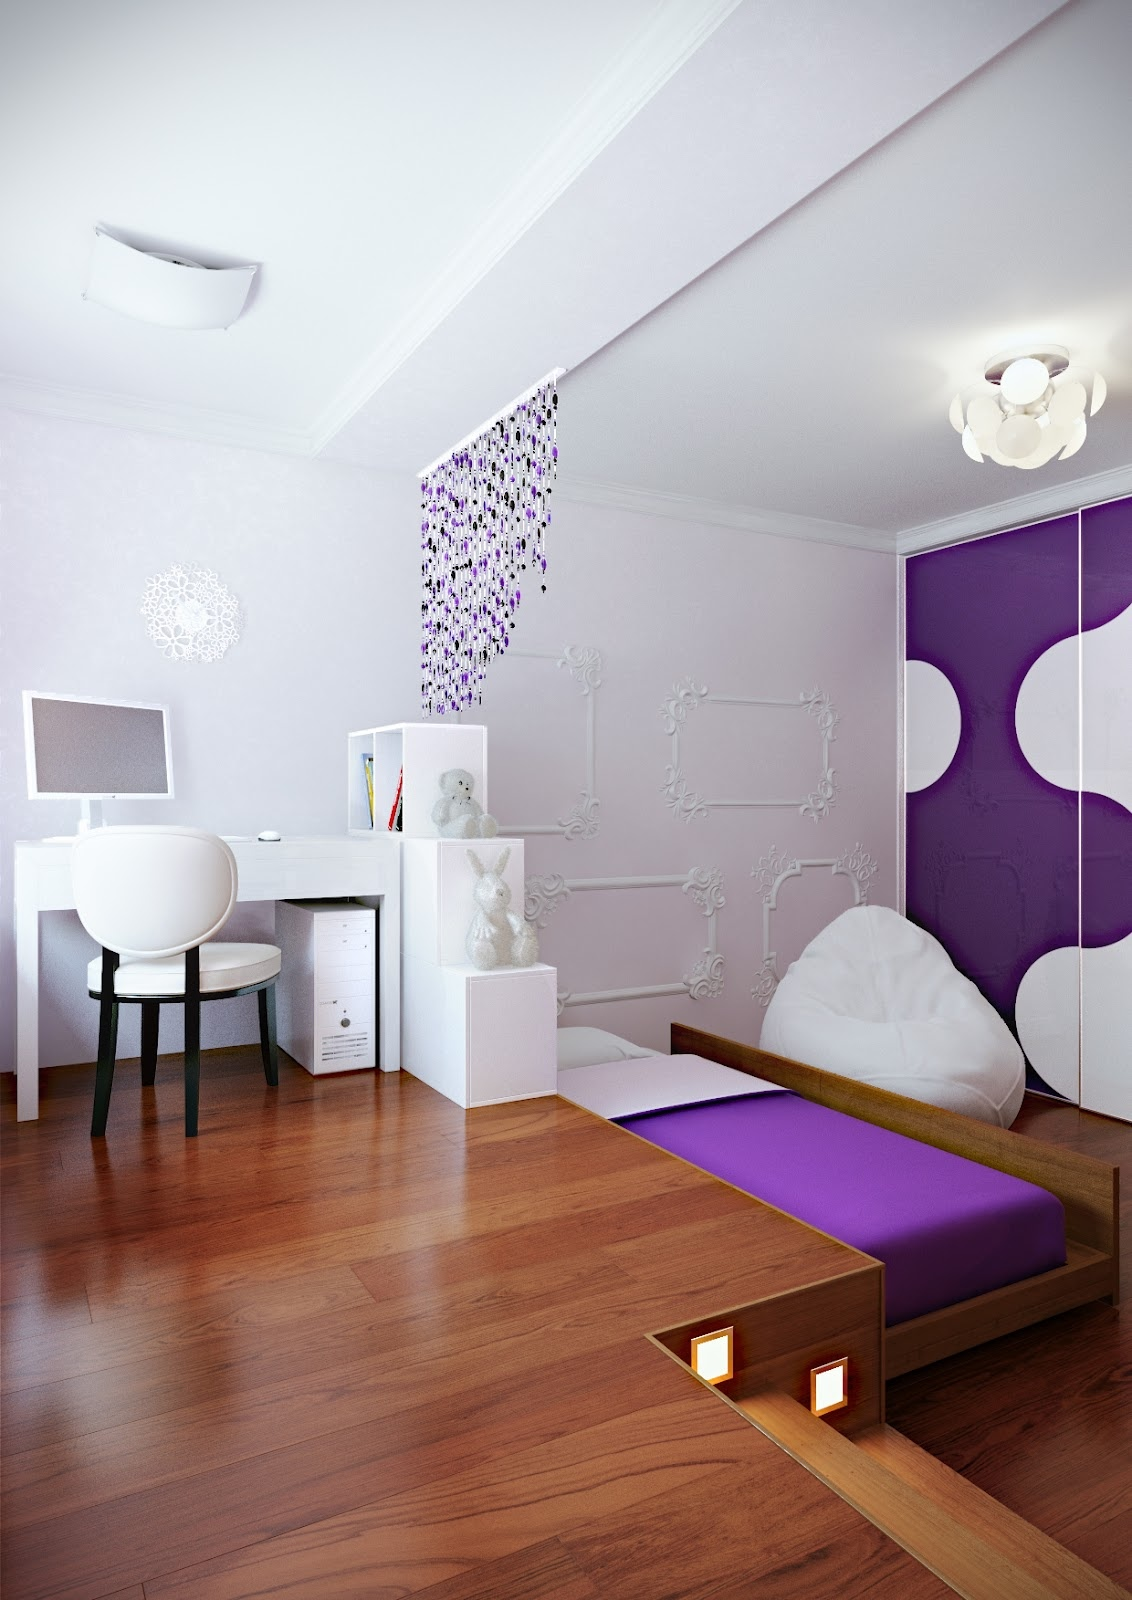 Purple white modern bedroom hideaway bed interior design - Camas en el suelo ...